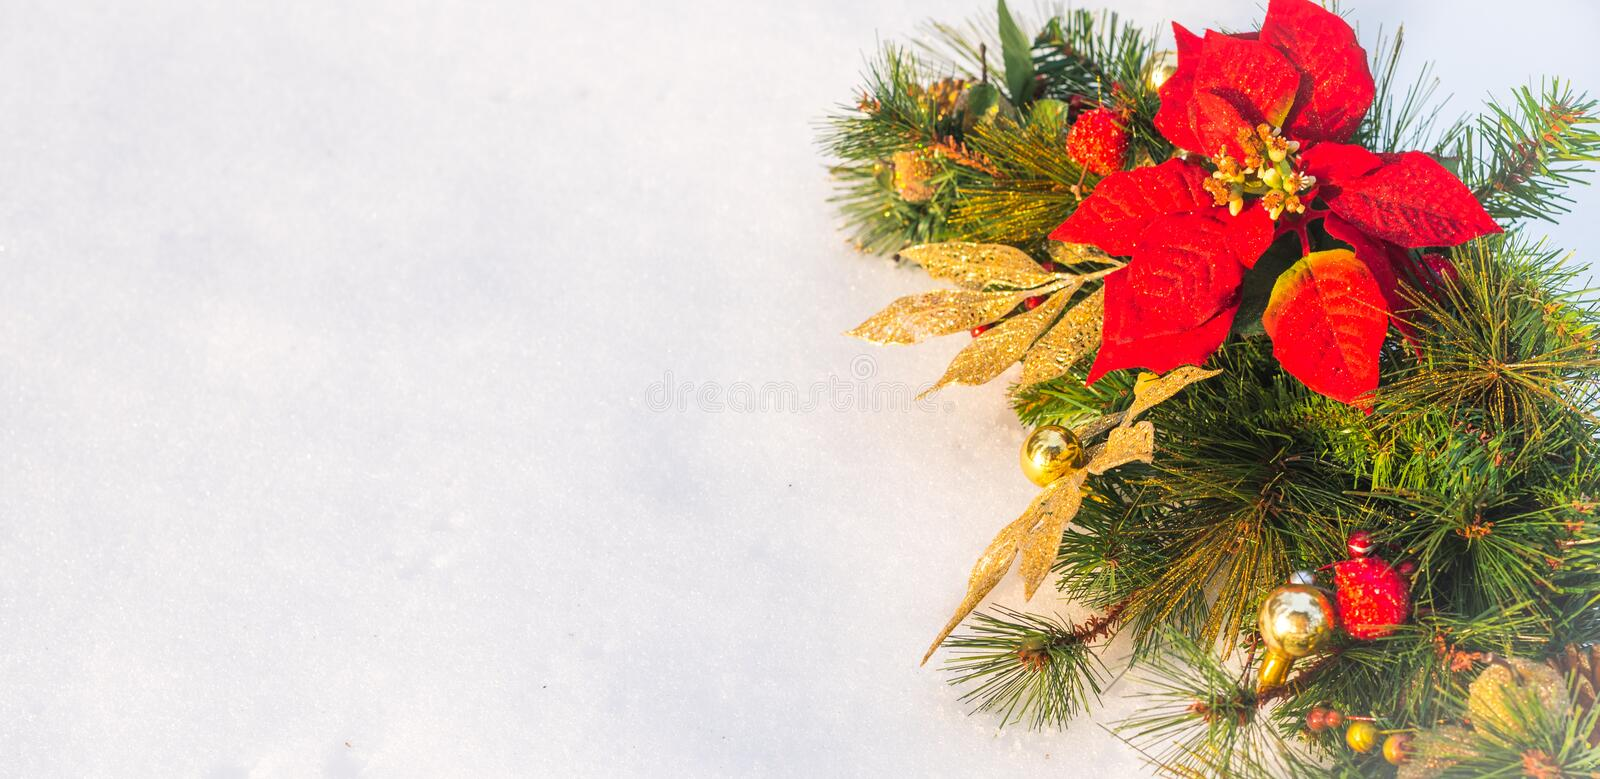 Download Christmas Holiday Faux Poinsettia Pine Wreath With White Copyspace. Stock Photo - Image: 83724213